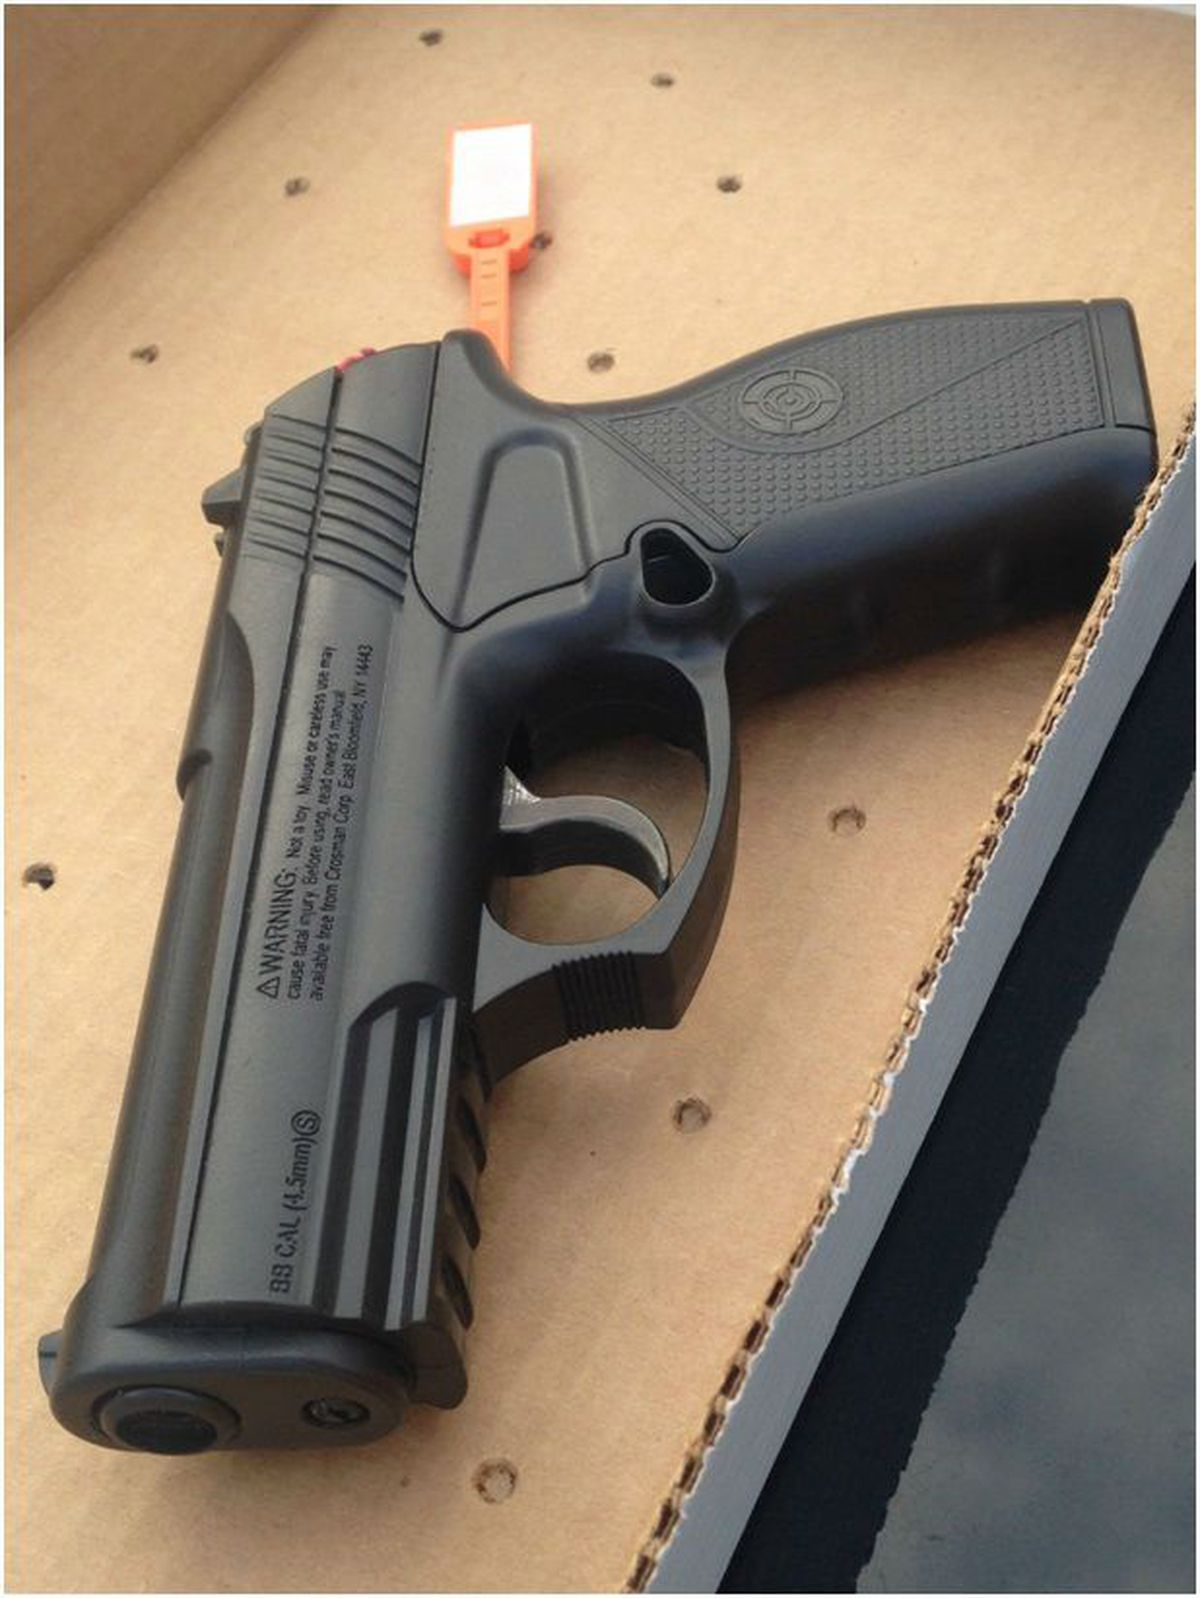 Airsoft gun design may be too realistic for law